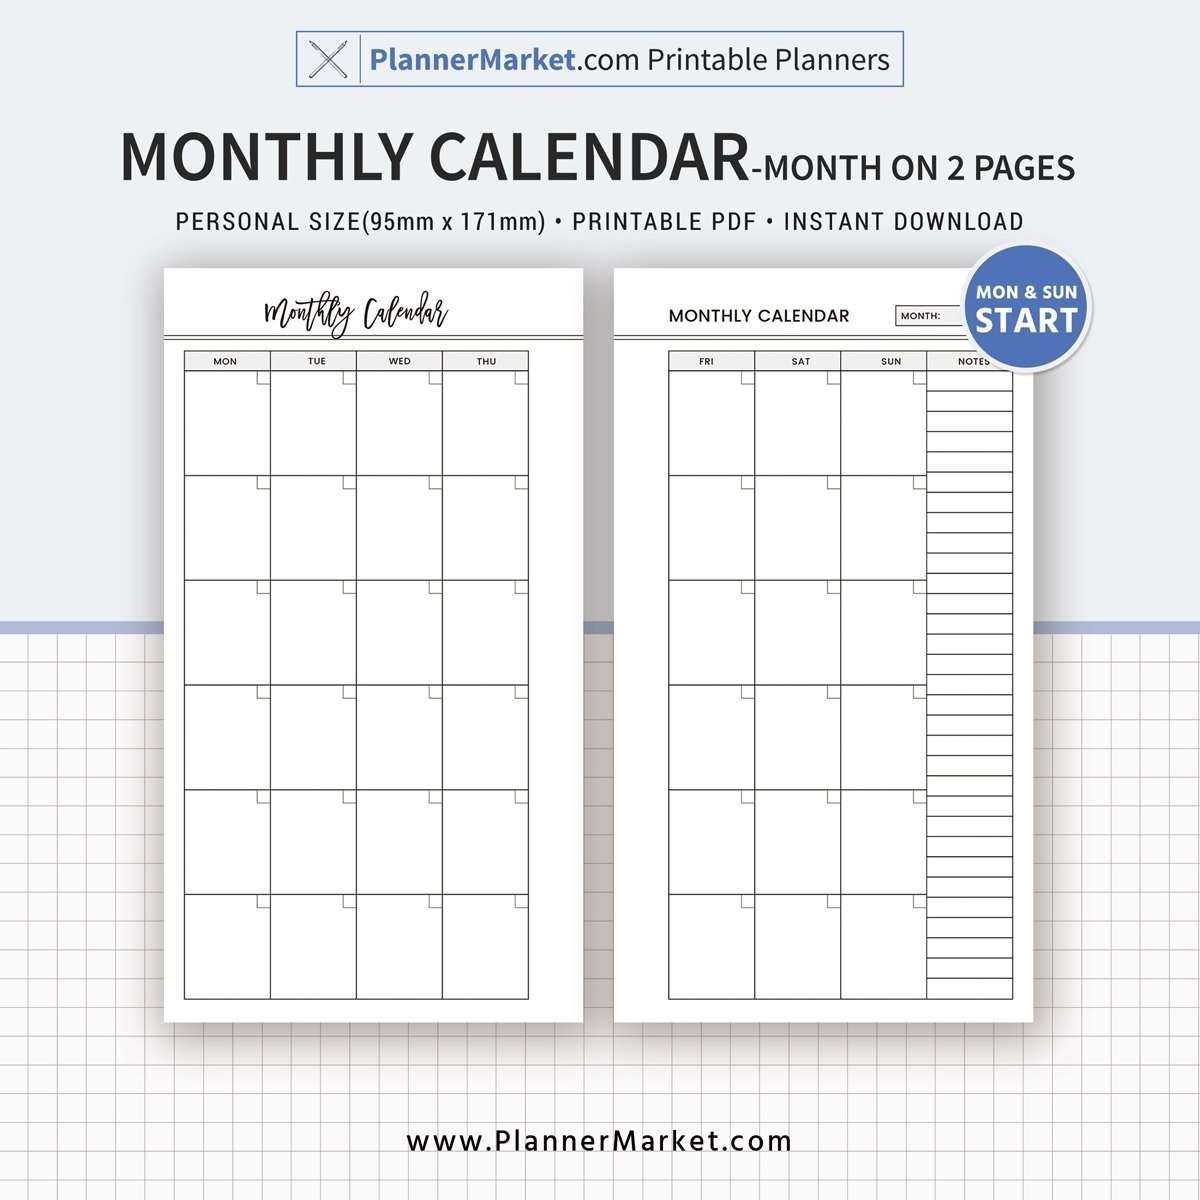 Monthly Calendar, Month On 2 Pages, 2019 Planner, Personal Size 2 2 Month Calendar 2019